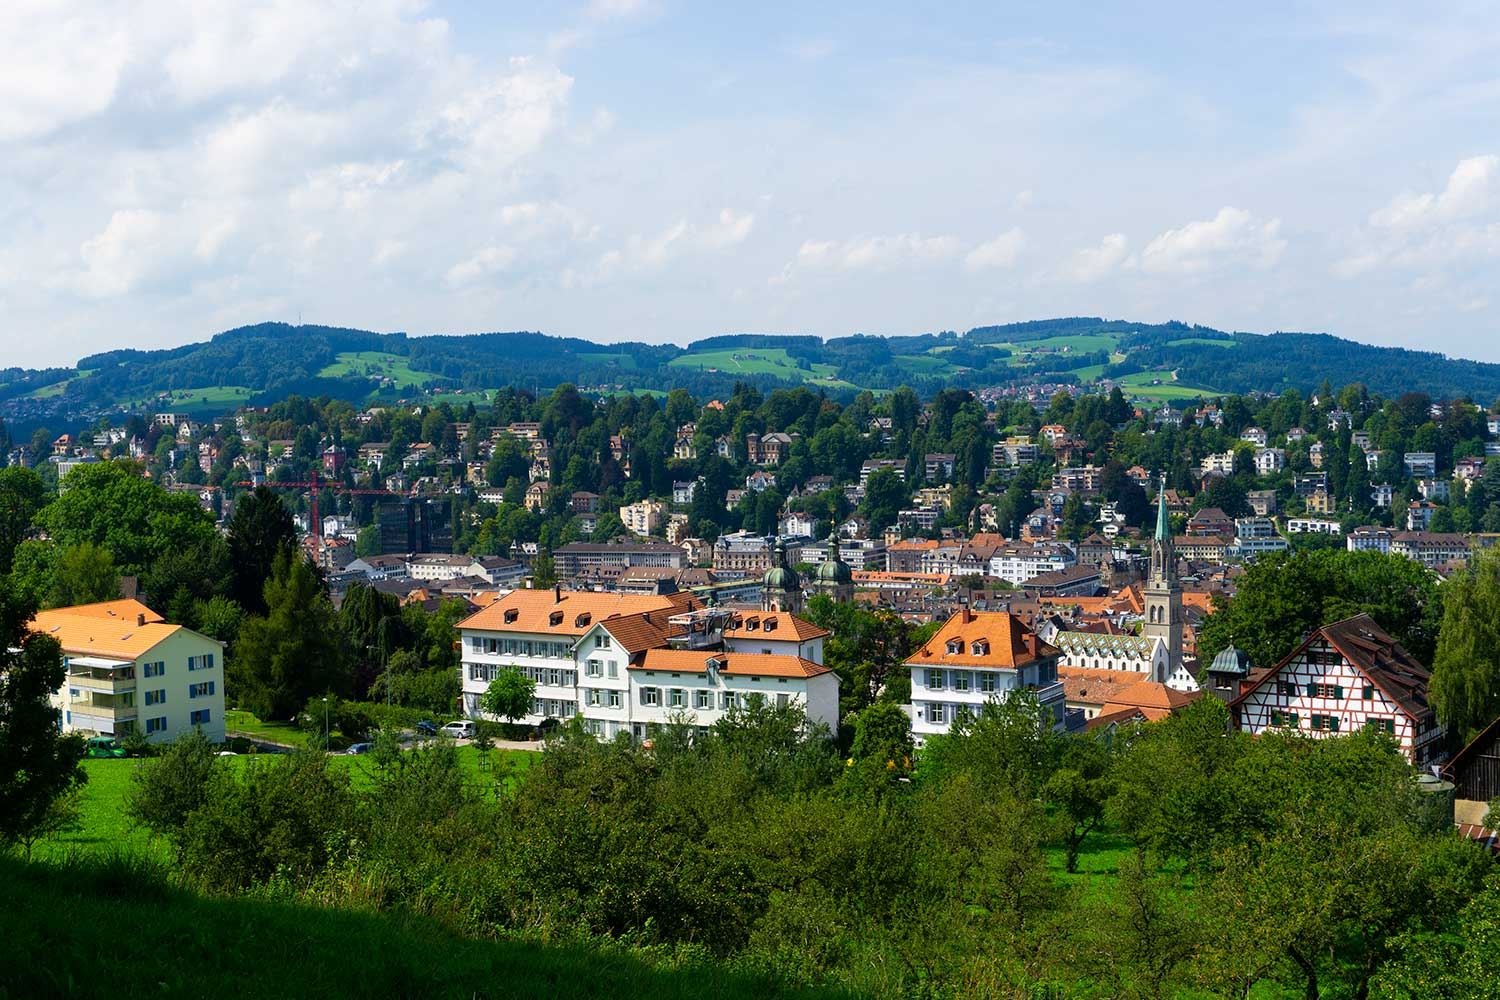 A view of the city of St. Gallen, Switzerland from the hills.